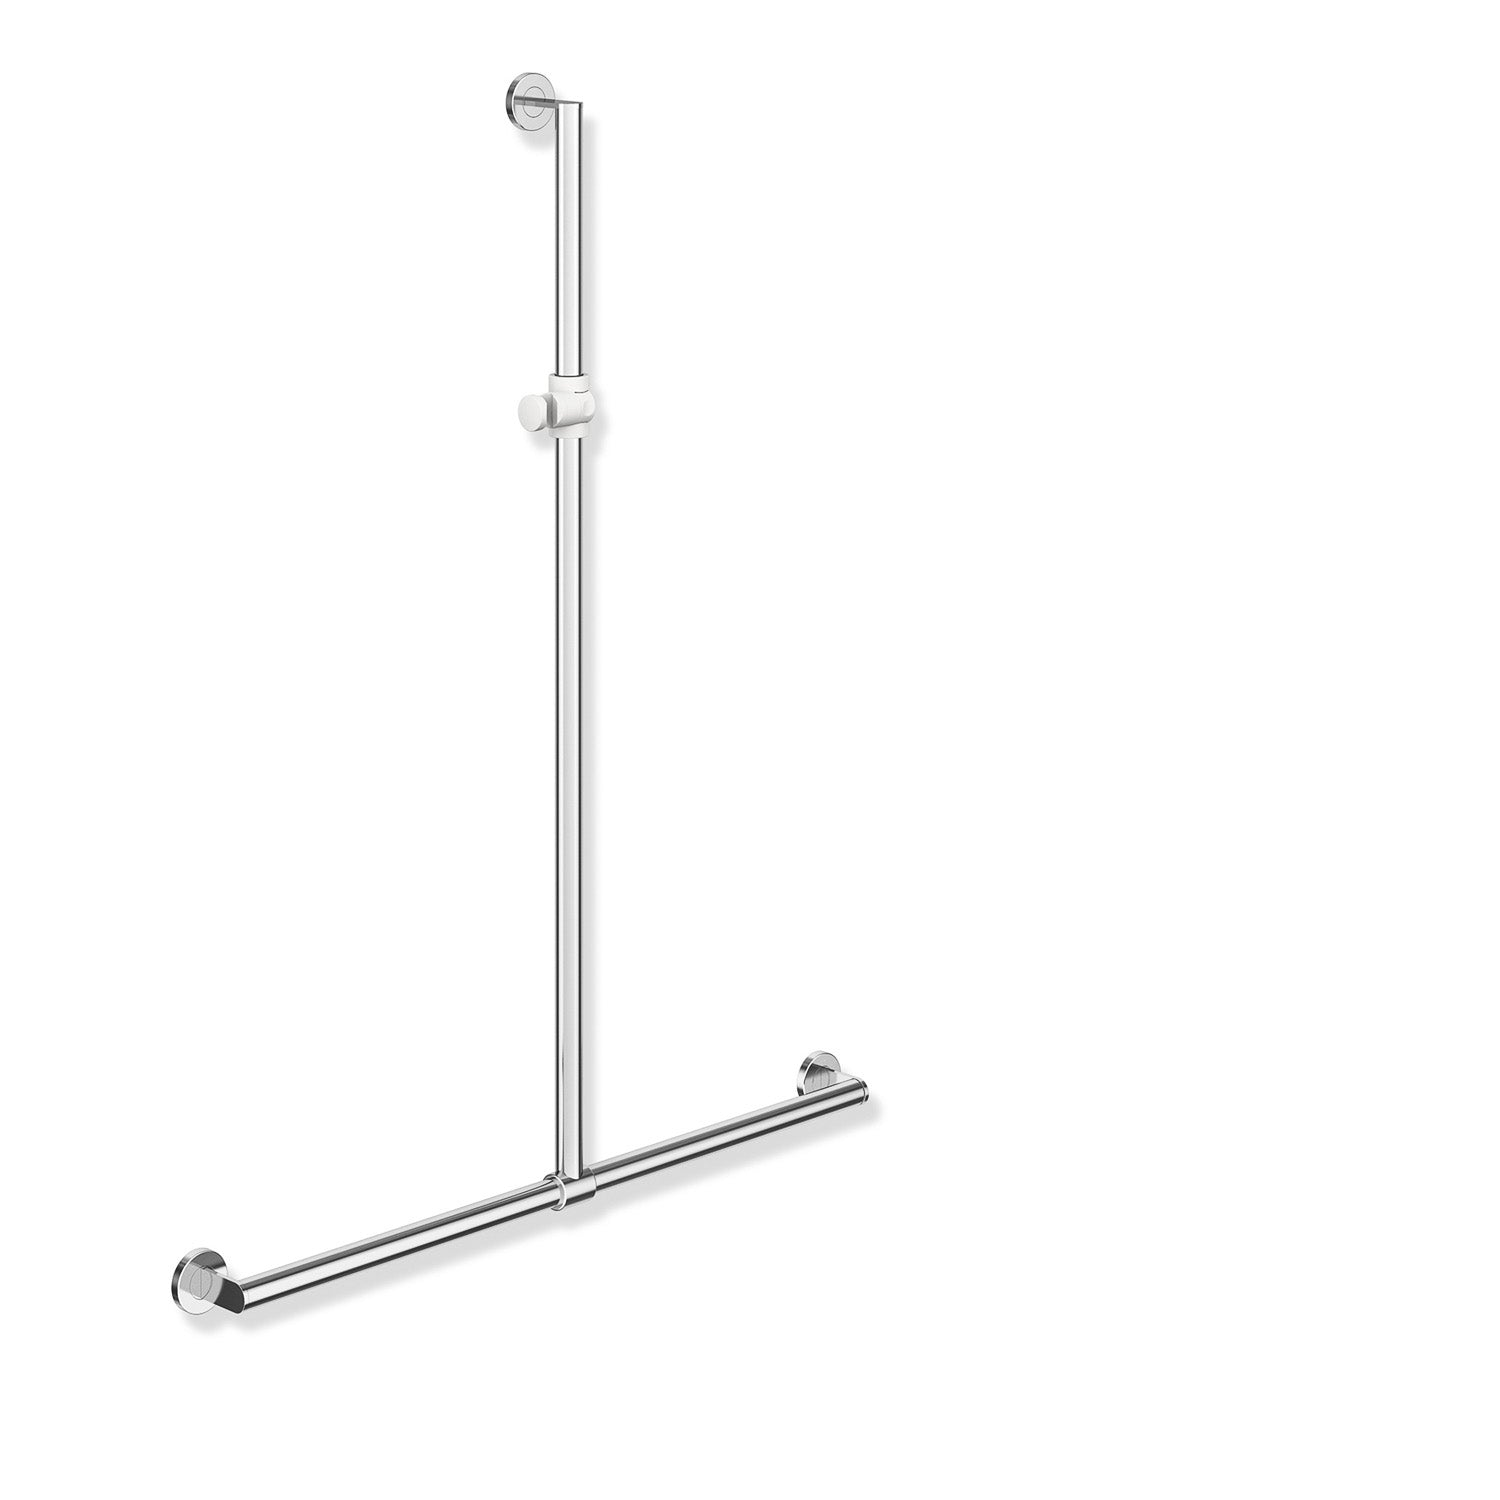 1250x1185mm Freestyle Supportive T Shaped Shower Rail with a chrome finish on a white background